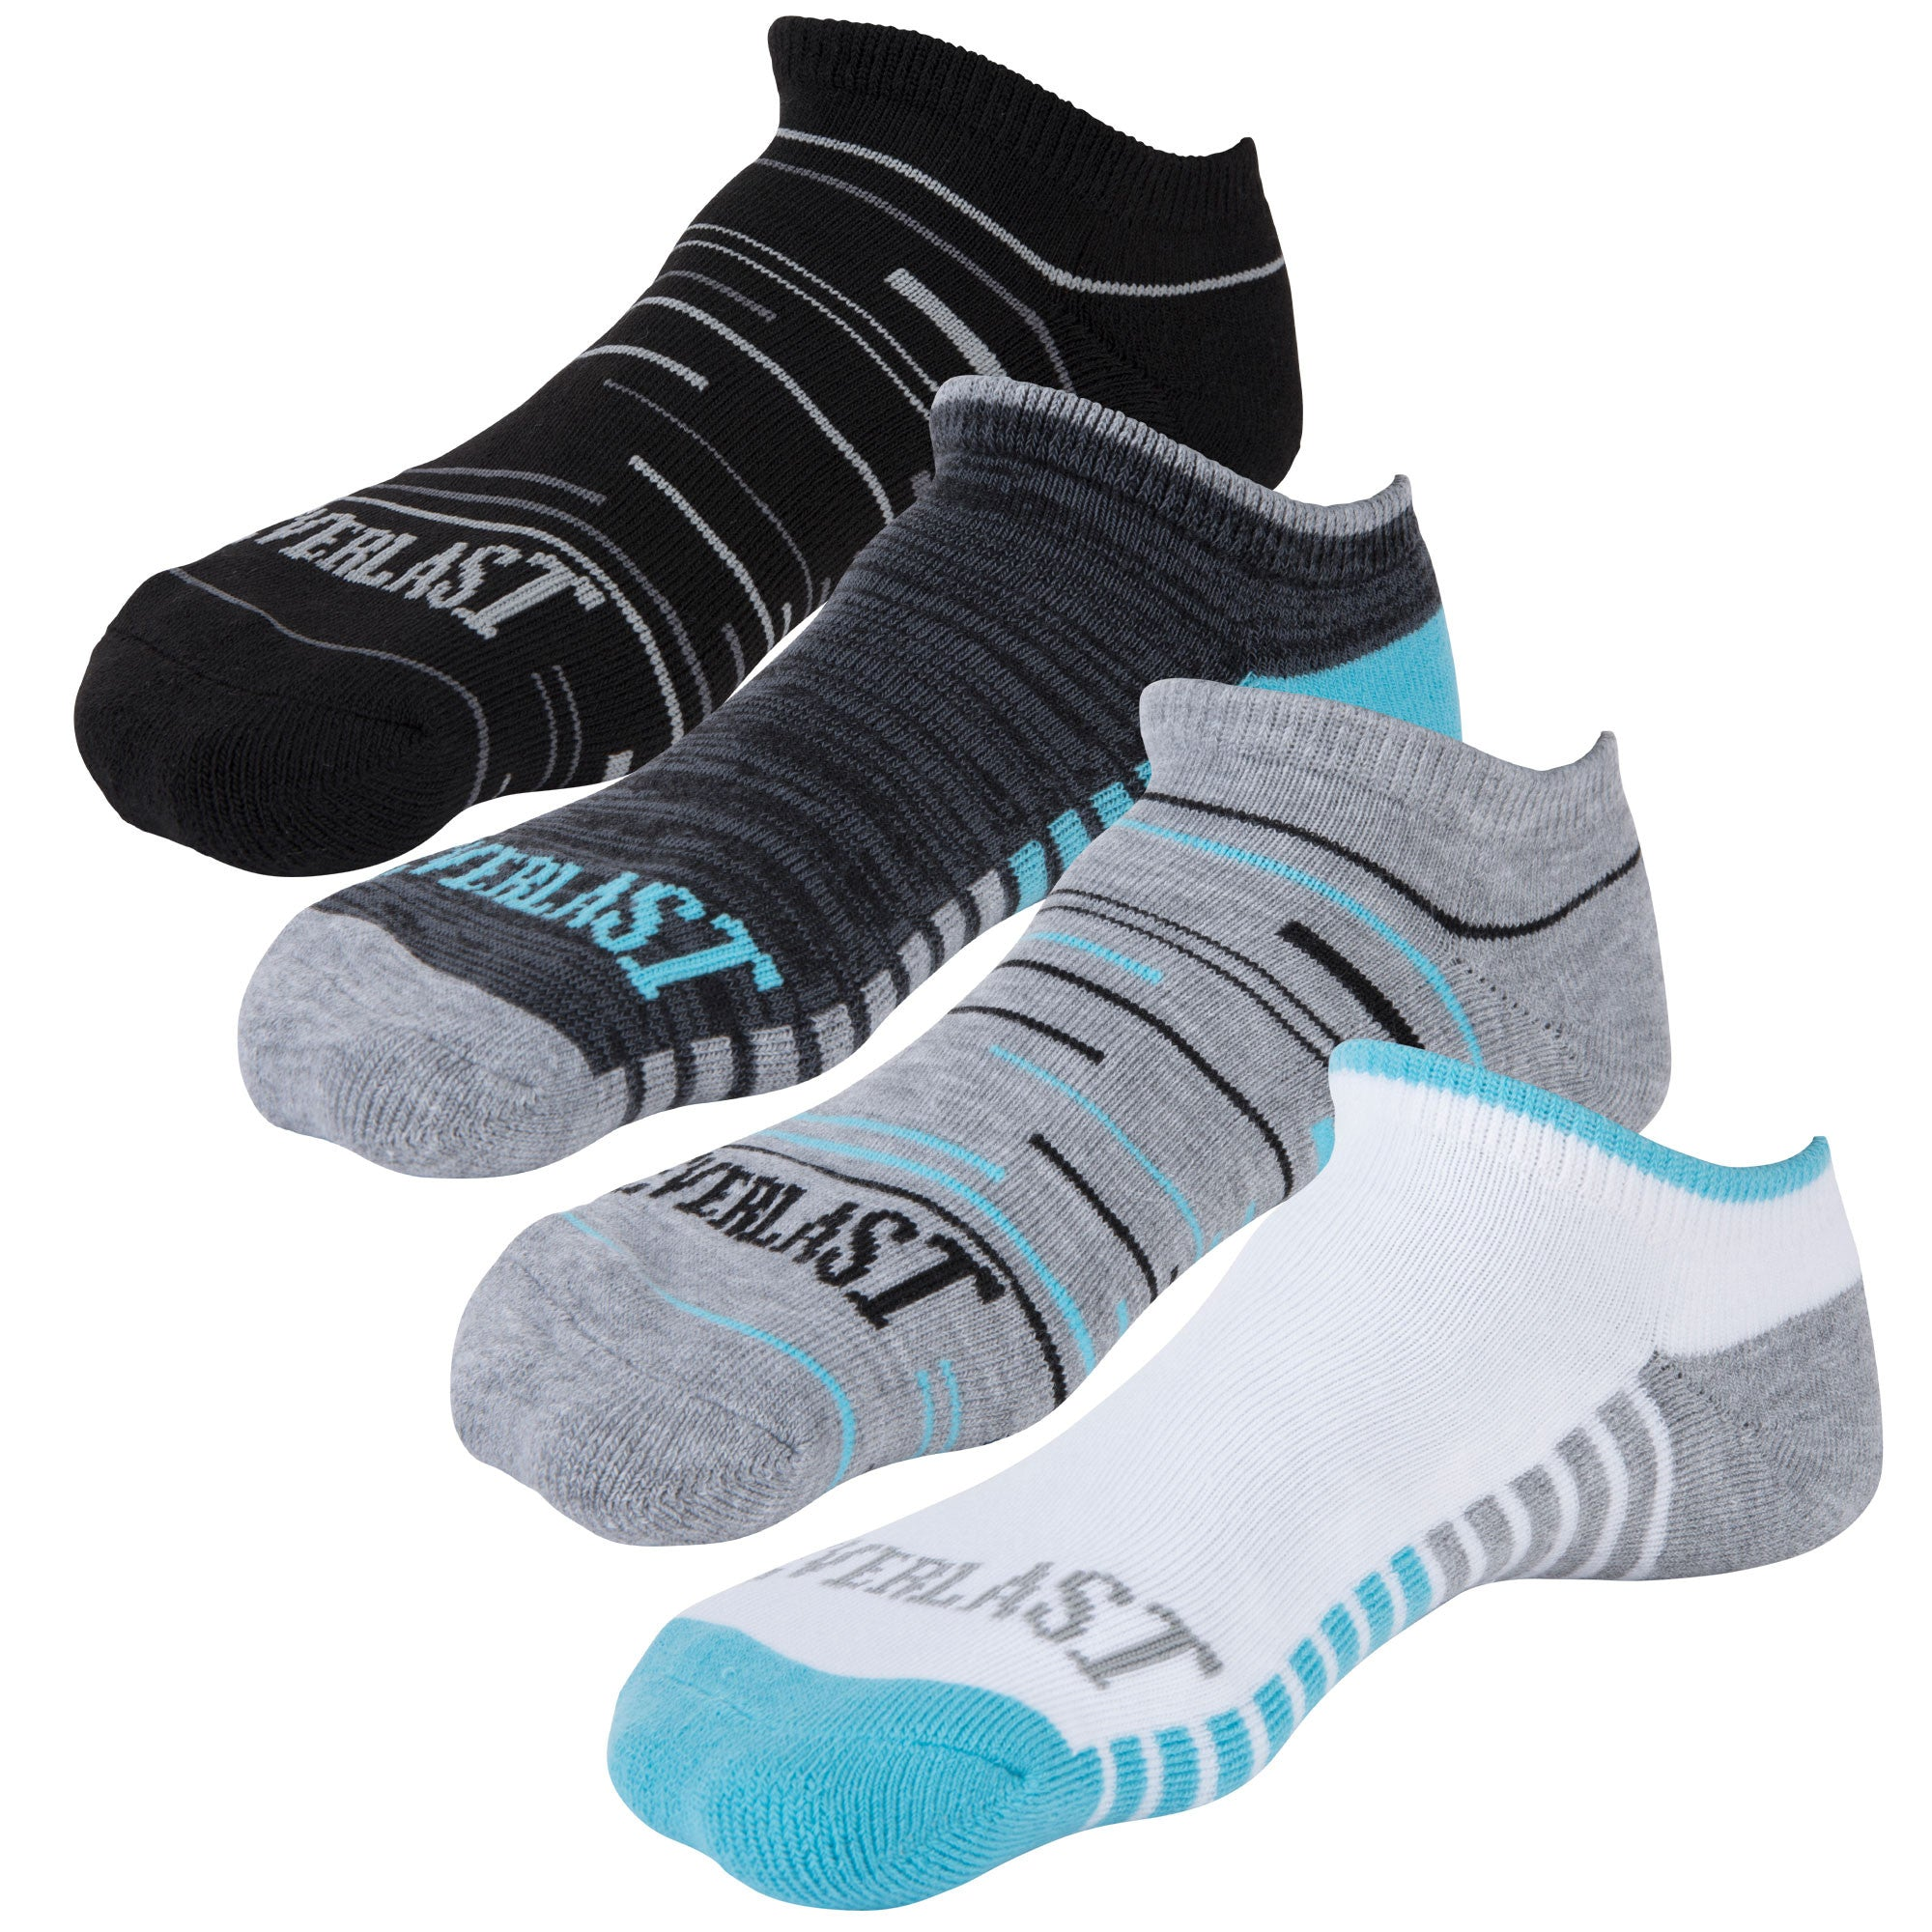 Everlast Ladies No Show Socks - 4 Pack